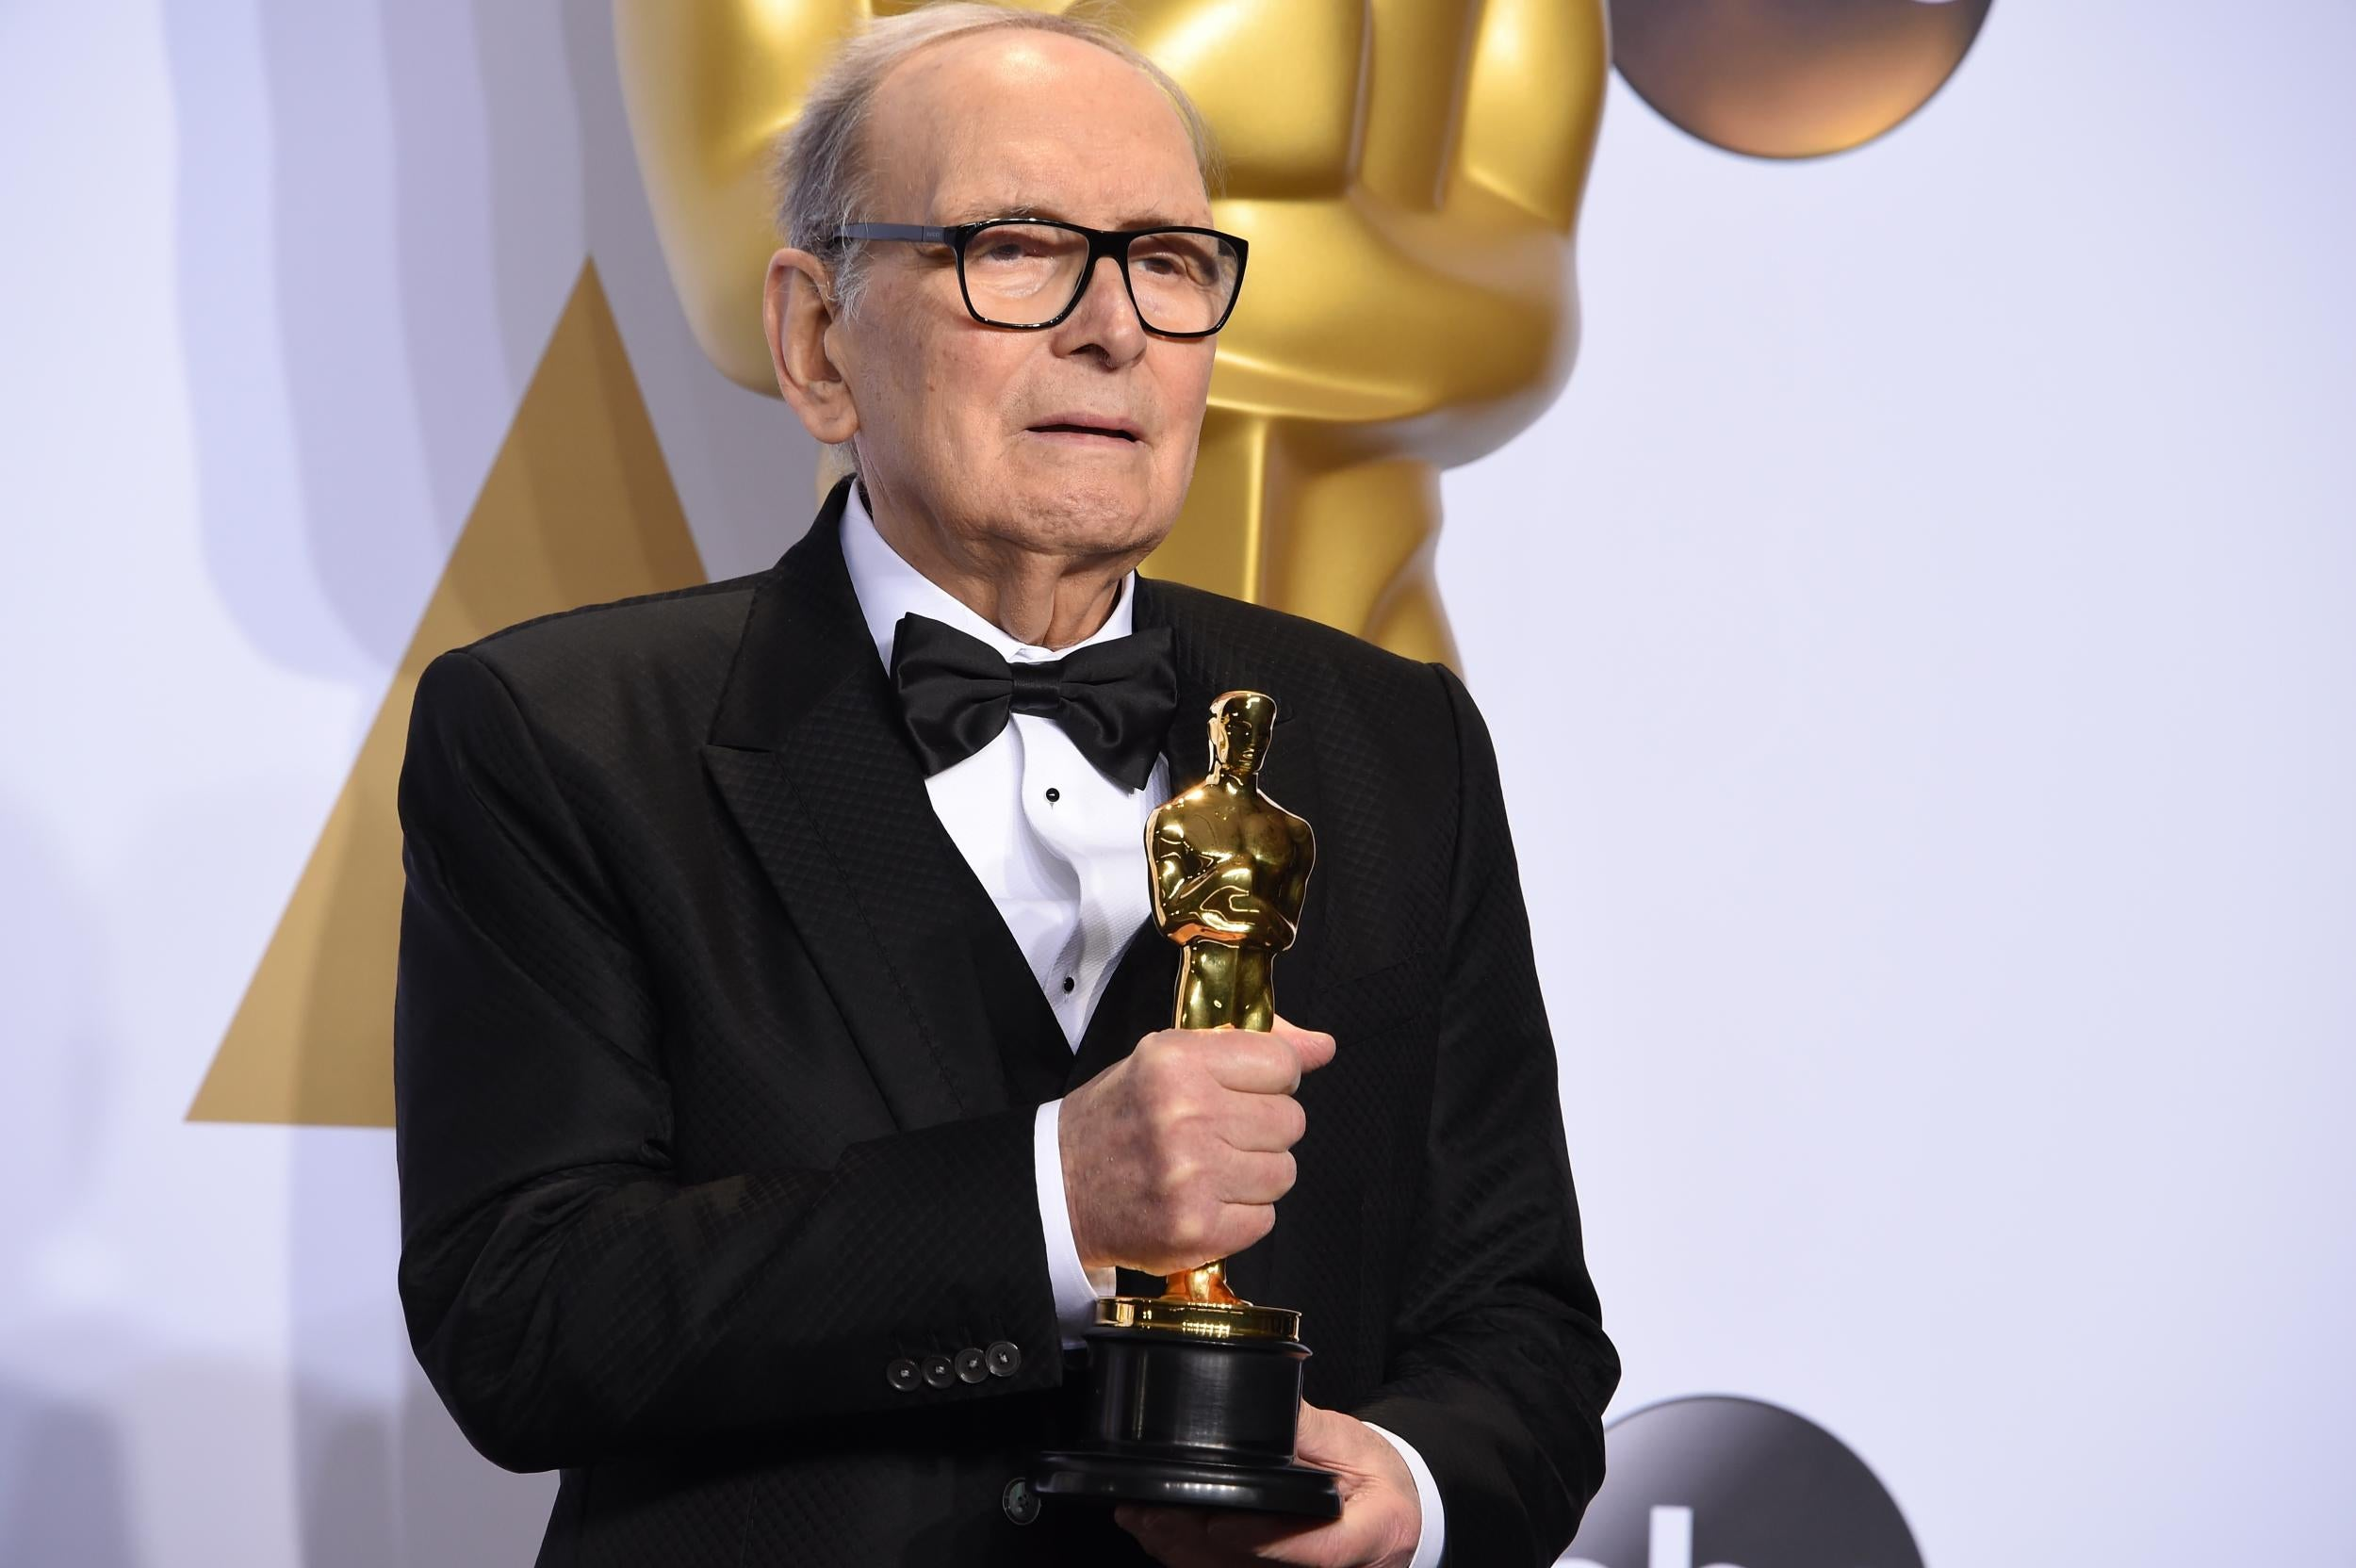 Forget Leo, Ennio Morricone finally won an Oscar after 500 movie credits